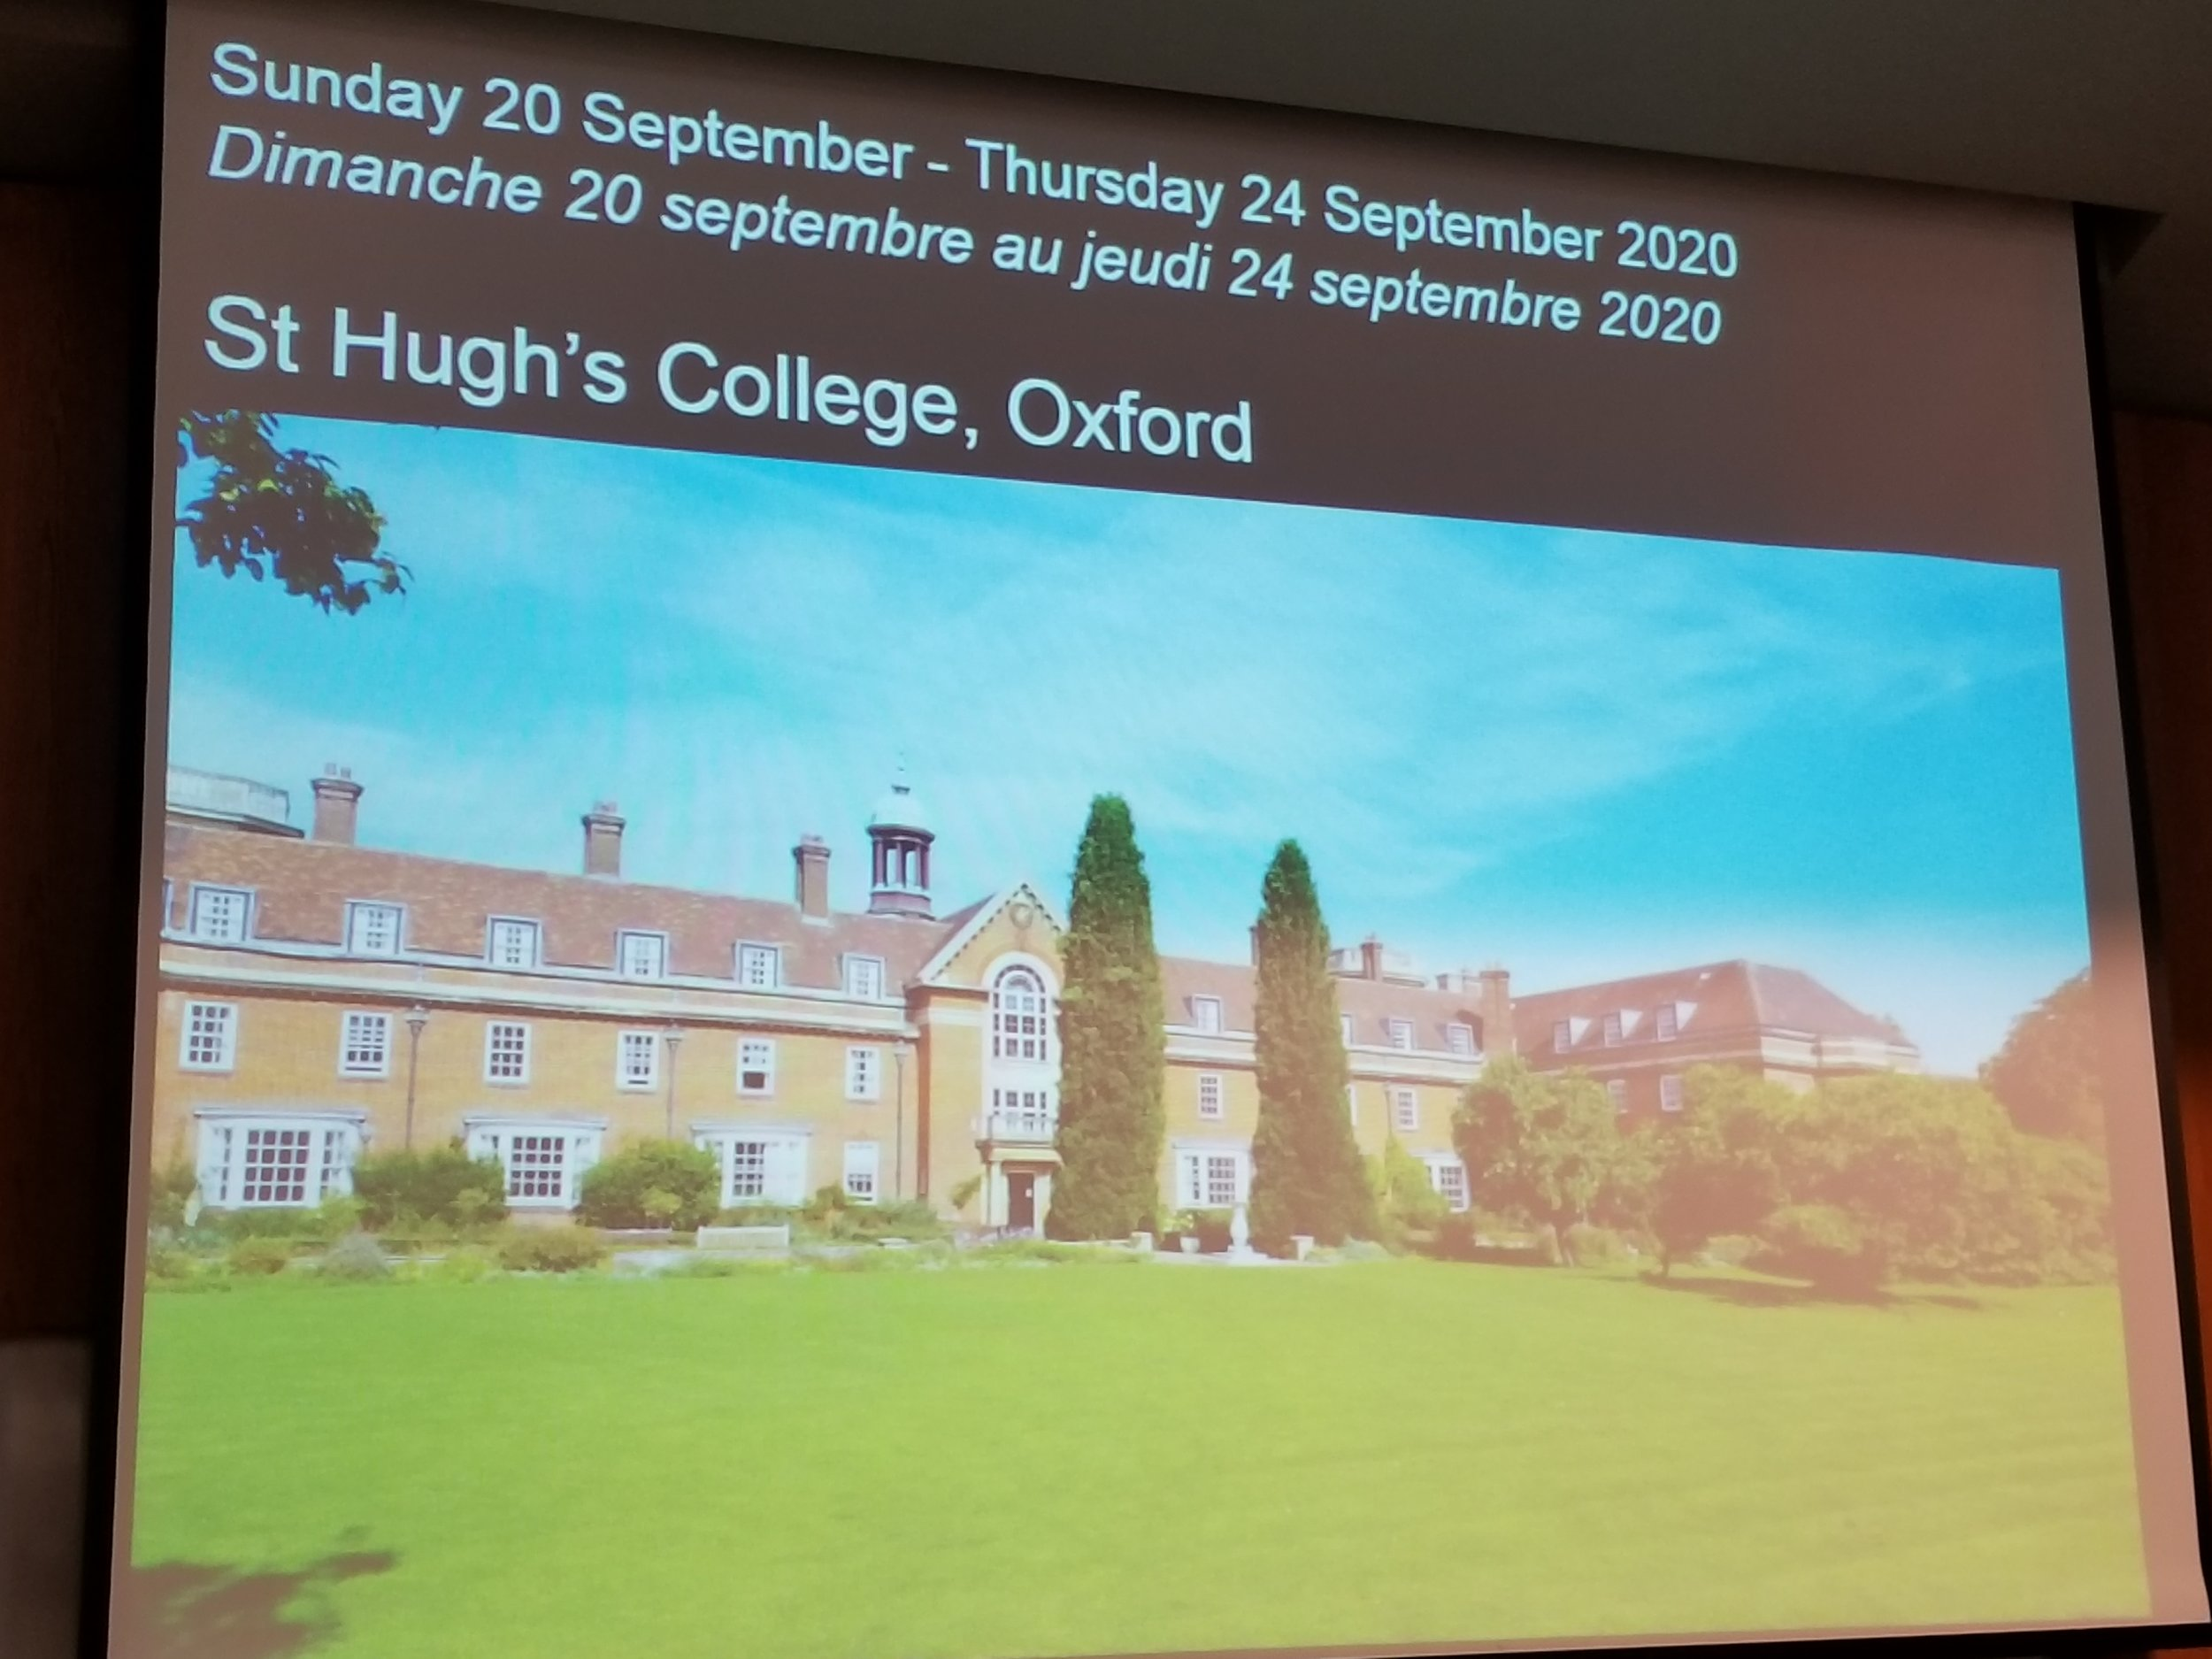 Announcement of the next biennial meeting of the Society of Africanist Archaeologists to be held at St. Hugh's College, University of Oxford from September 20 to September 24, 2020.